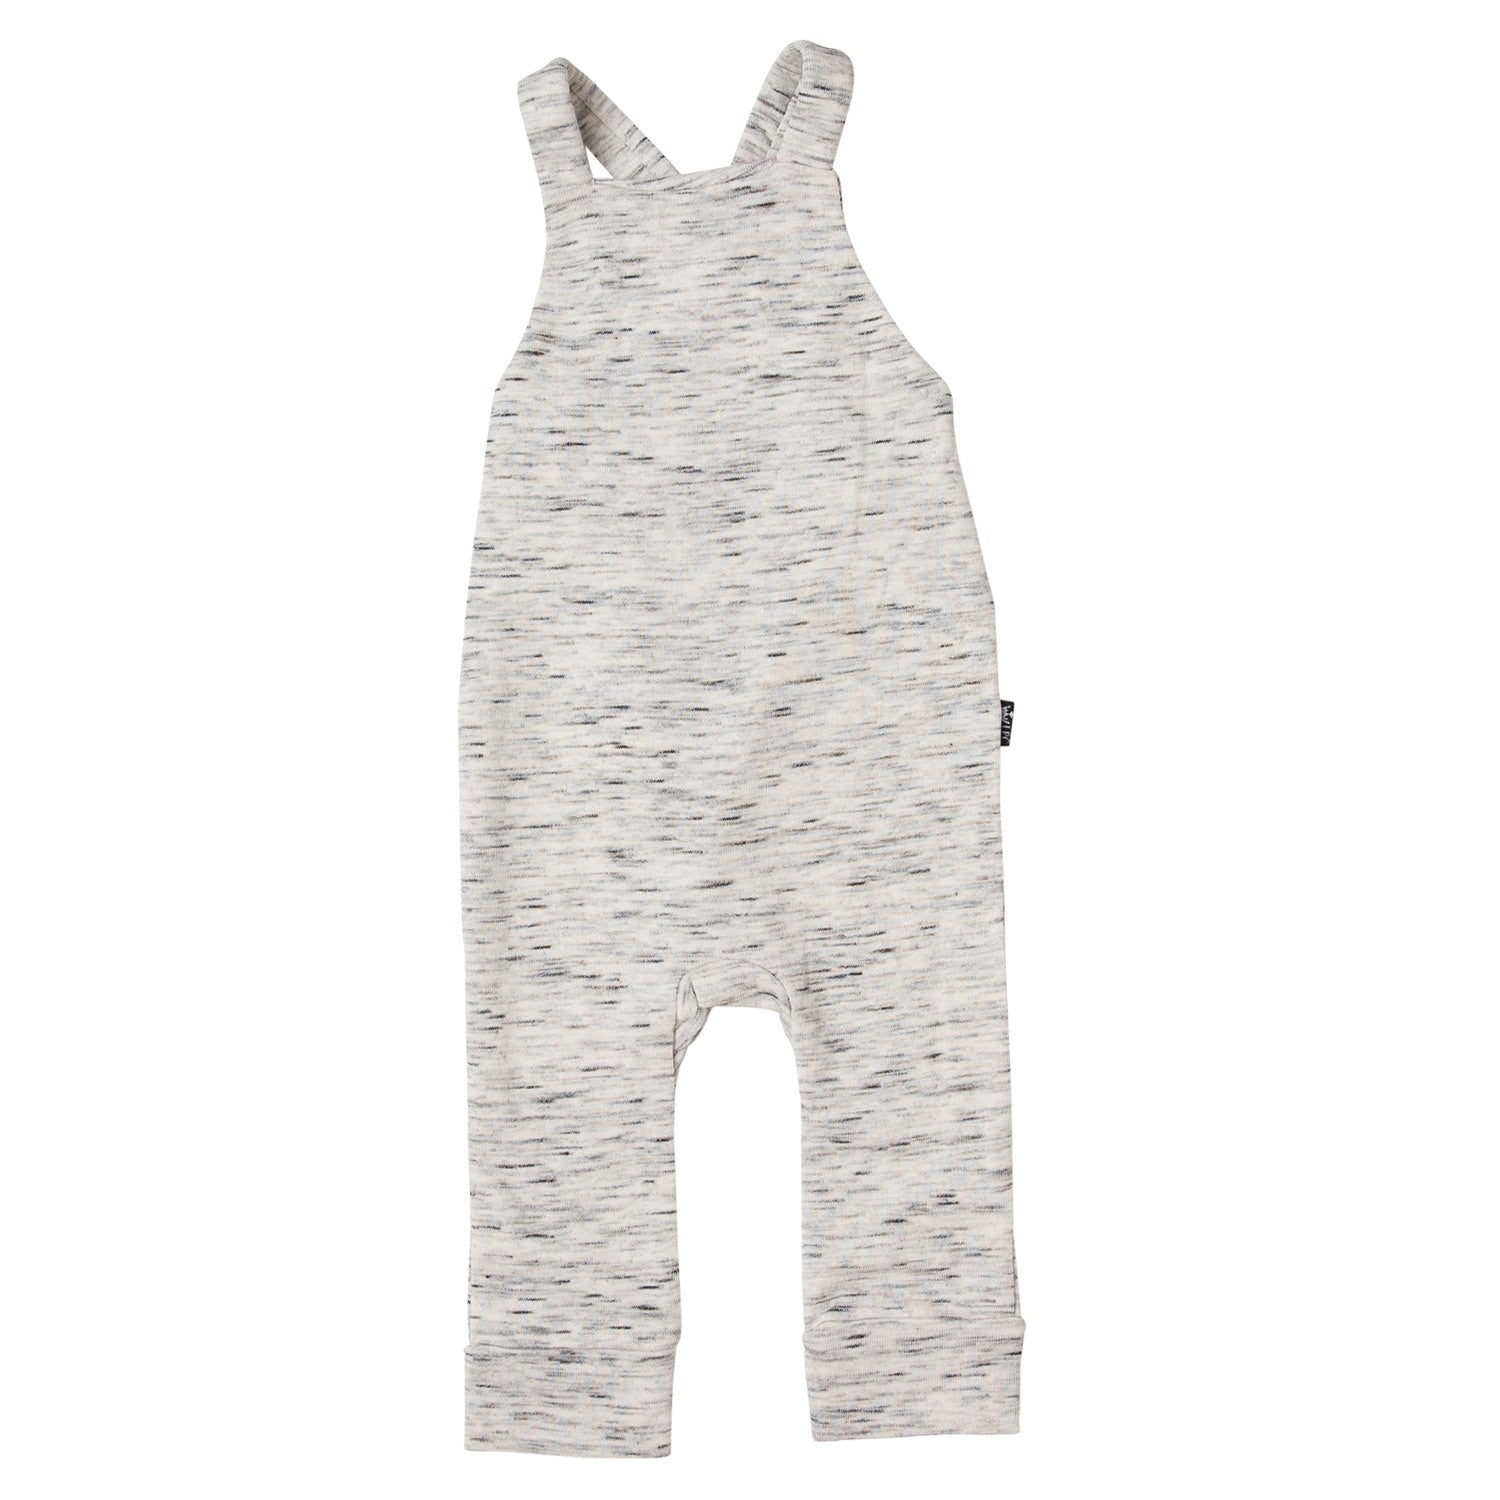 ftor-gry-gray-french-terry-overall-romper-front-product.jpg